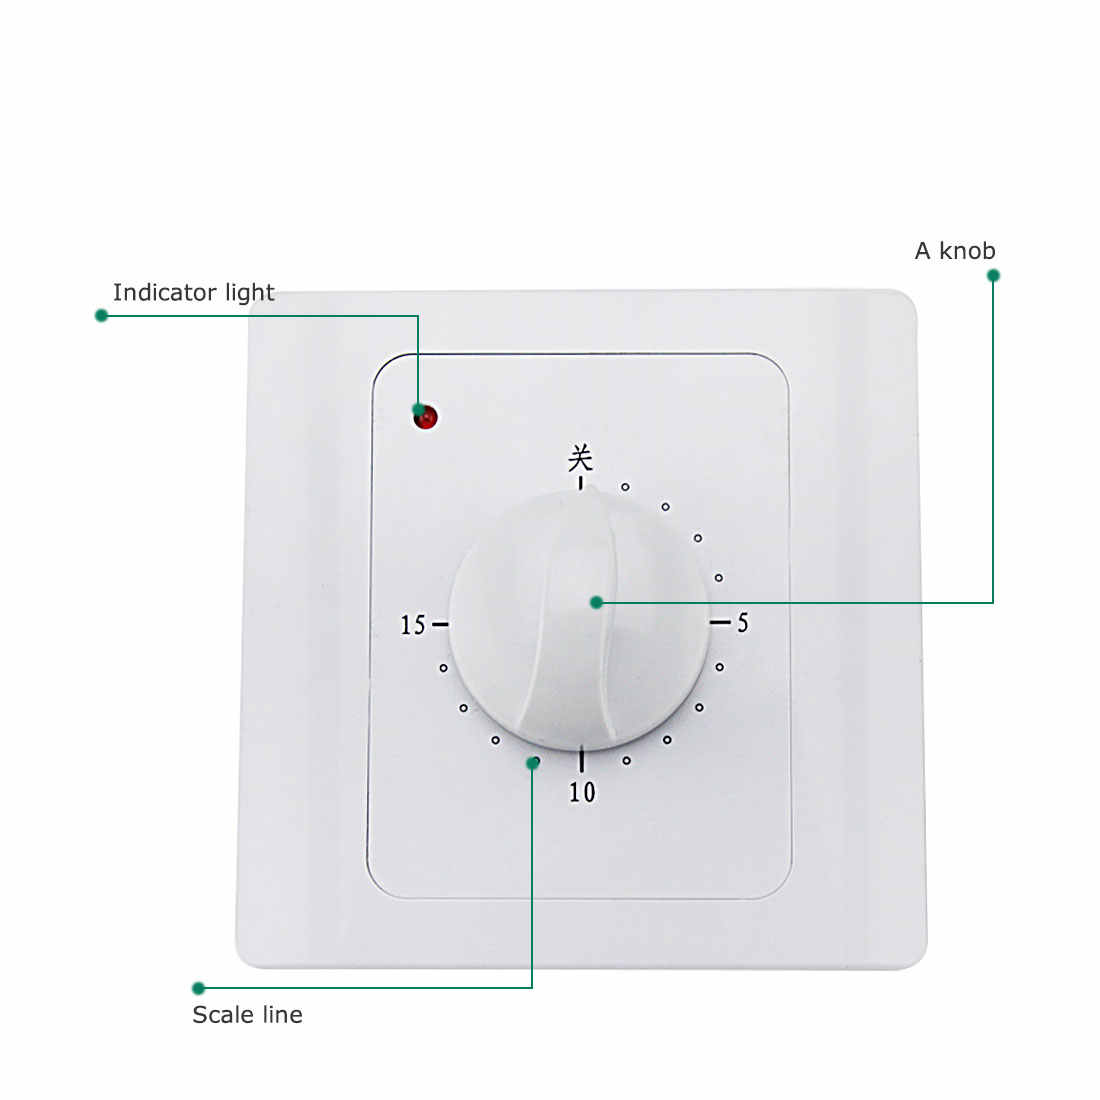 8287d5a91d Detail Feedback Questions about New AC 220V 10A 30Min Countdown Timer  Switch Electric Digital Time Plug Control Switch Timer Socket Knob Style  Switch ...